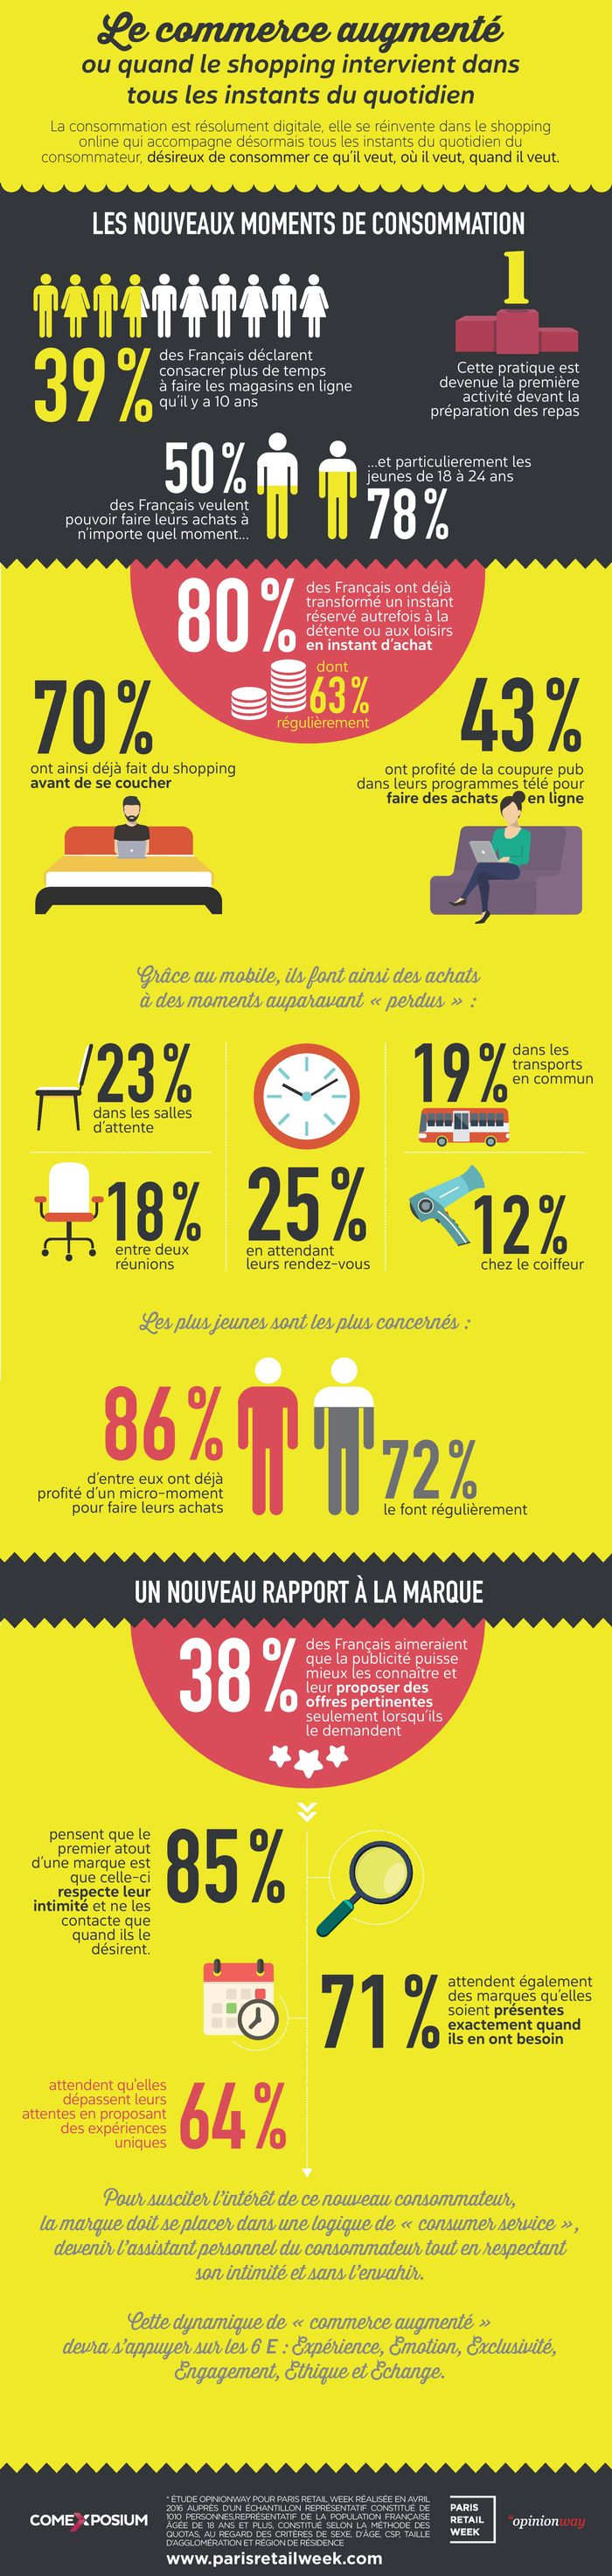 INFOGRAPHIE CONSOMMATEUR SHOPPING